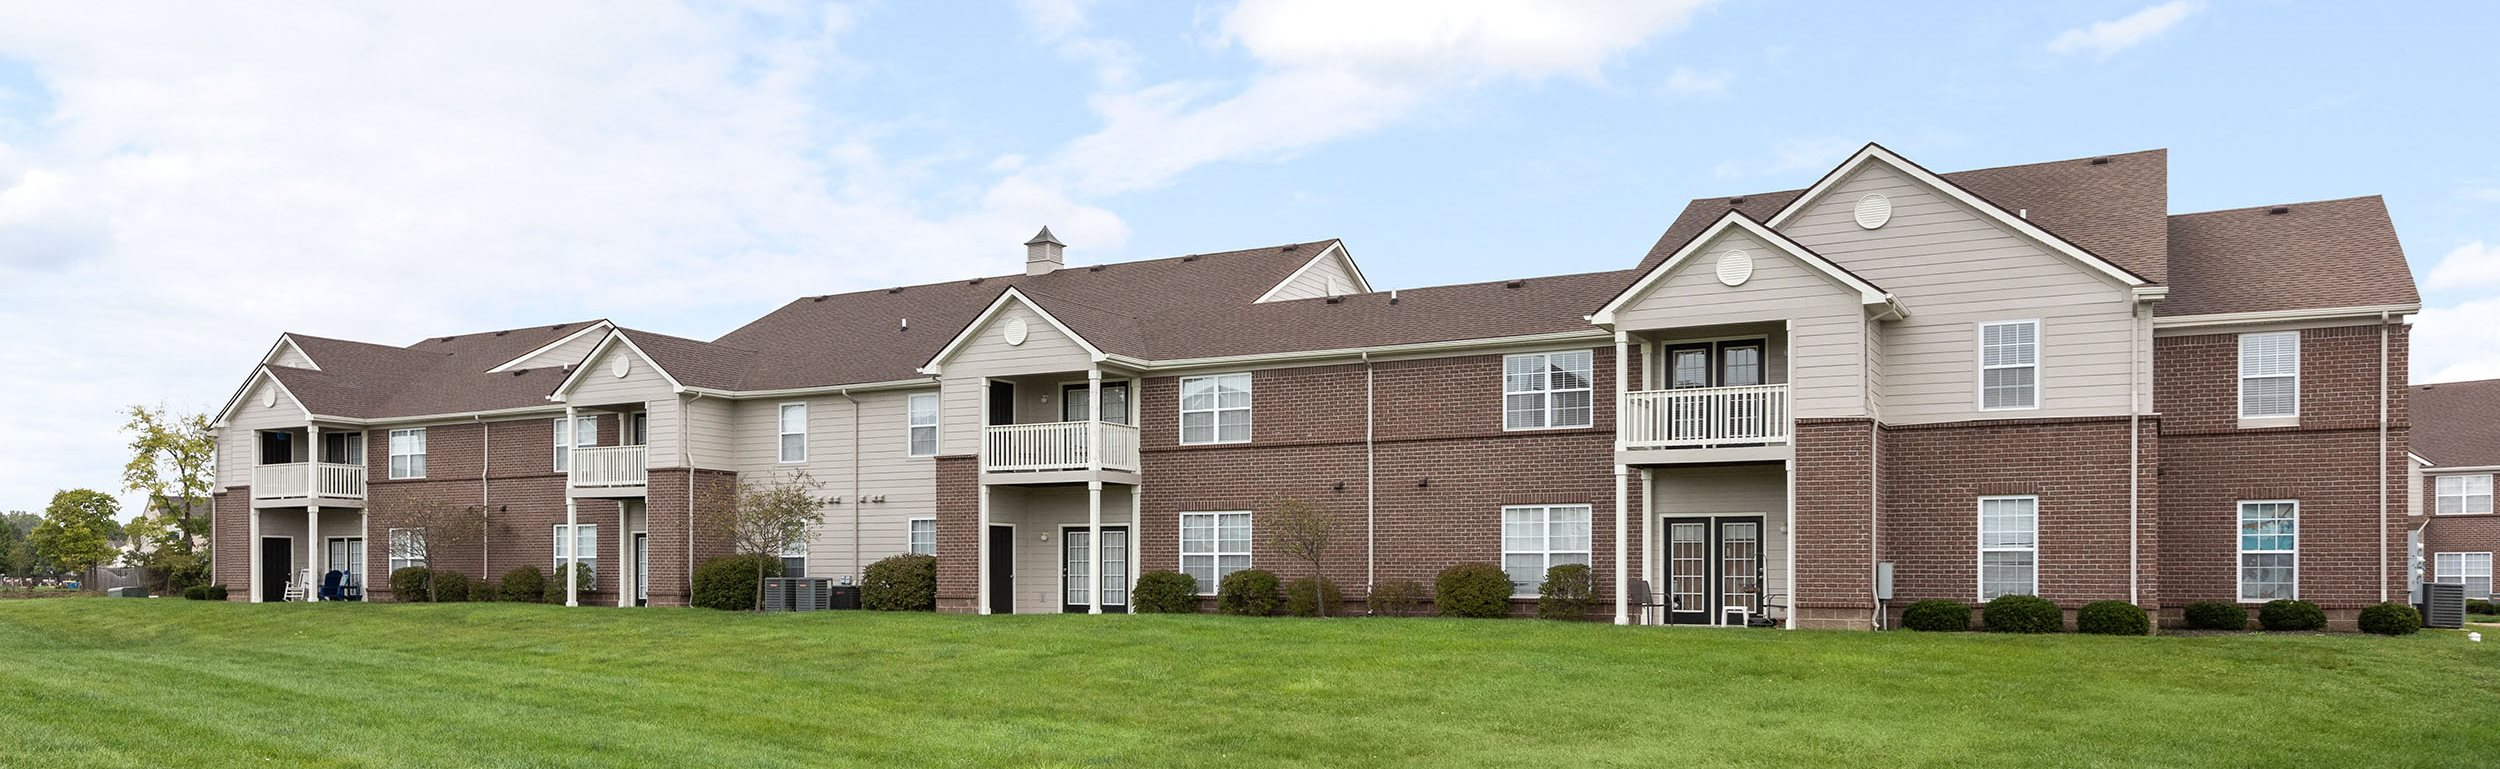 Hartshire Lakes Apartment Homes